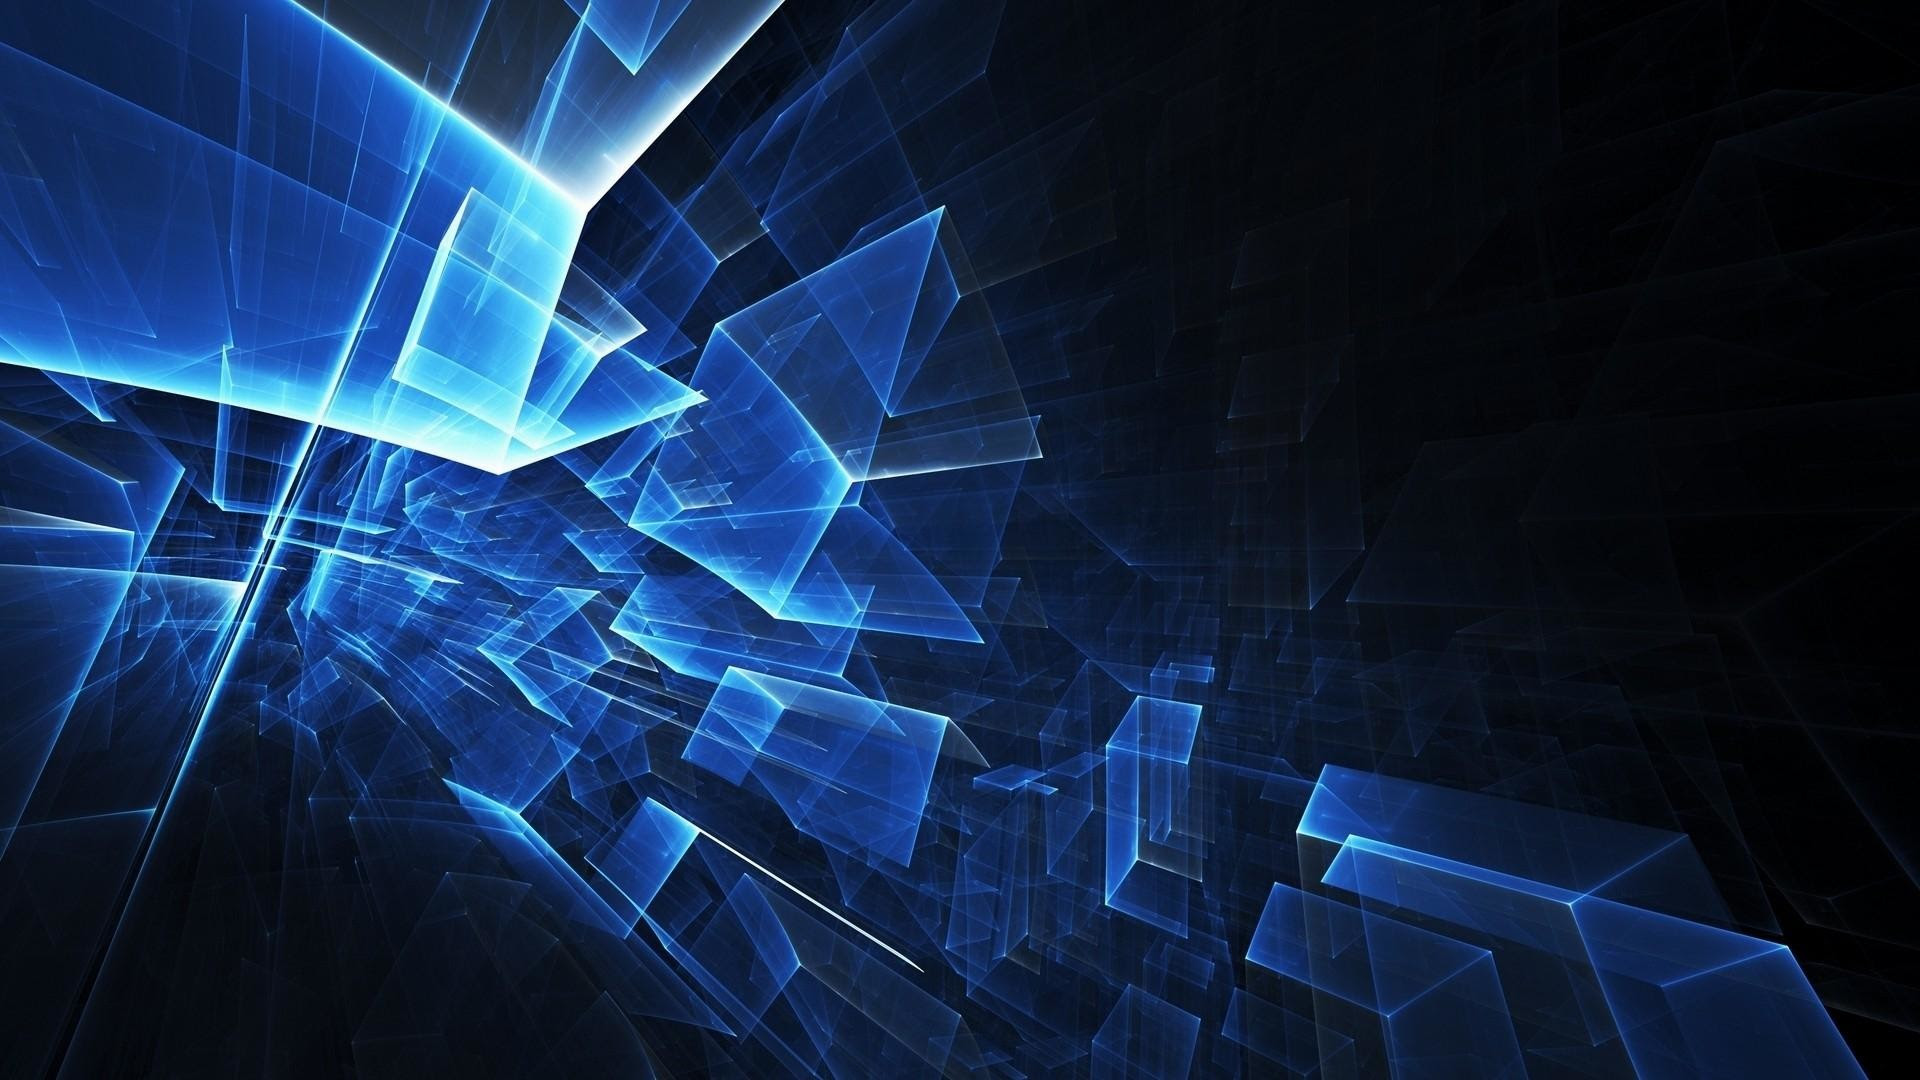 Hd Blue Abstract Wallpaper 71 Images